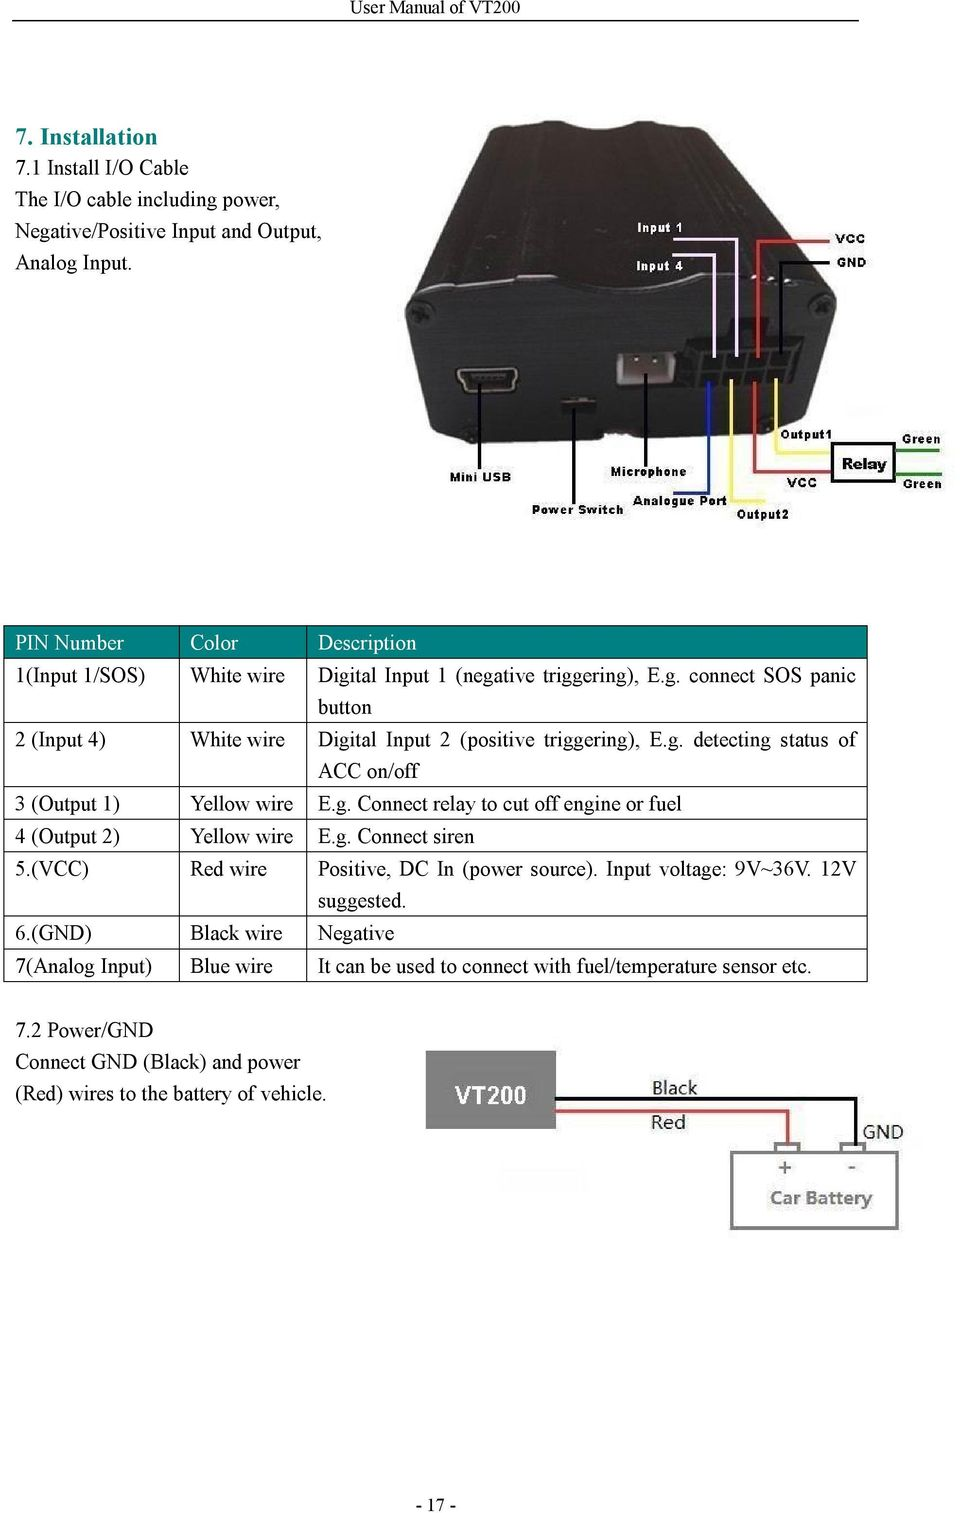 User Manual Of Vt200 Gps Vehicle Tracker Model Price Rfid Car Immobilizer Wireless Relay Fuel Pump Circuit Cut Off G Detecting Status Acc On 3 Output 1 Yellow Wire